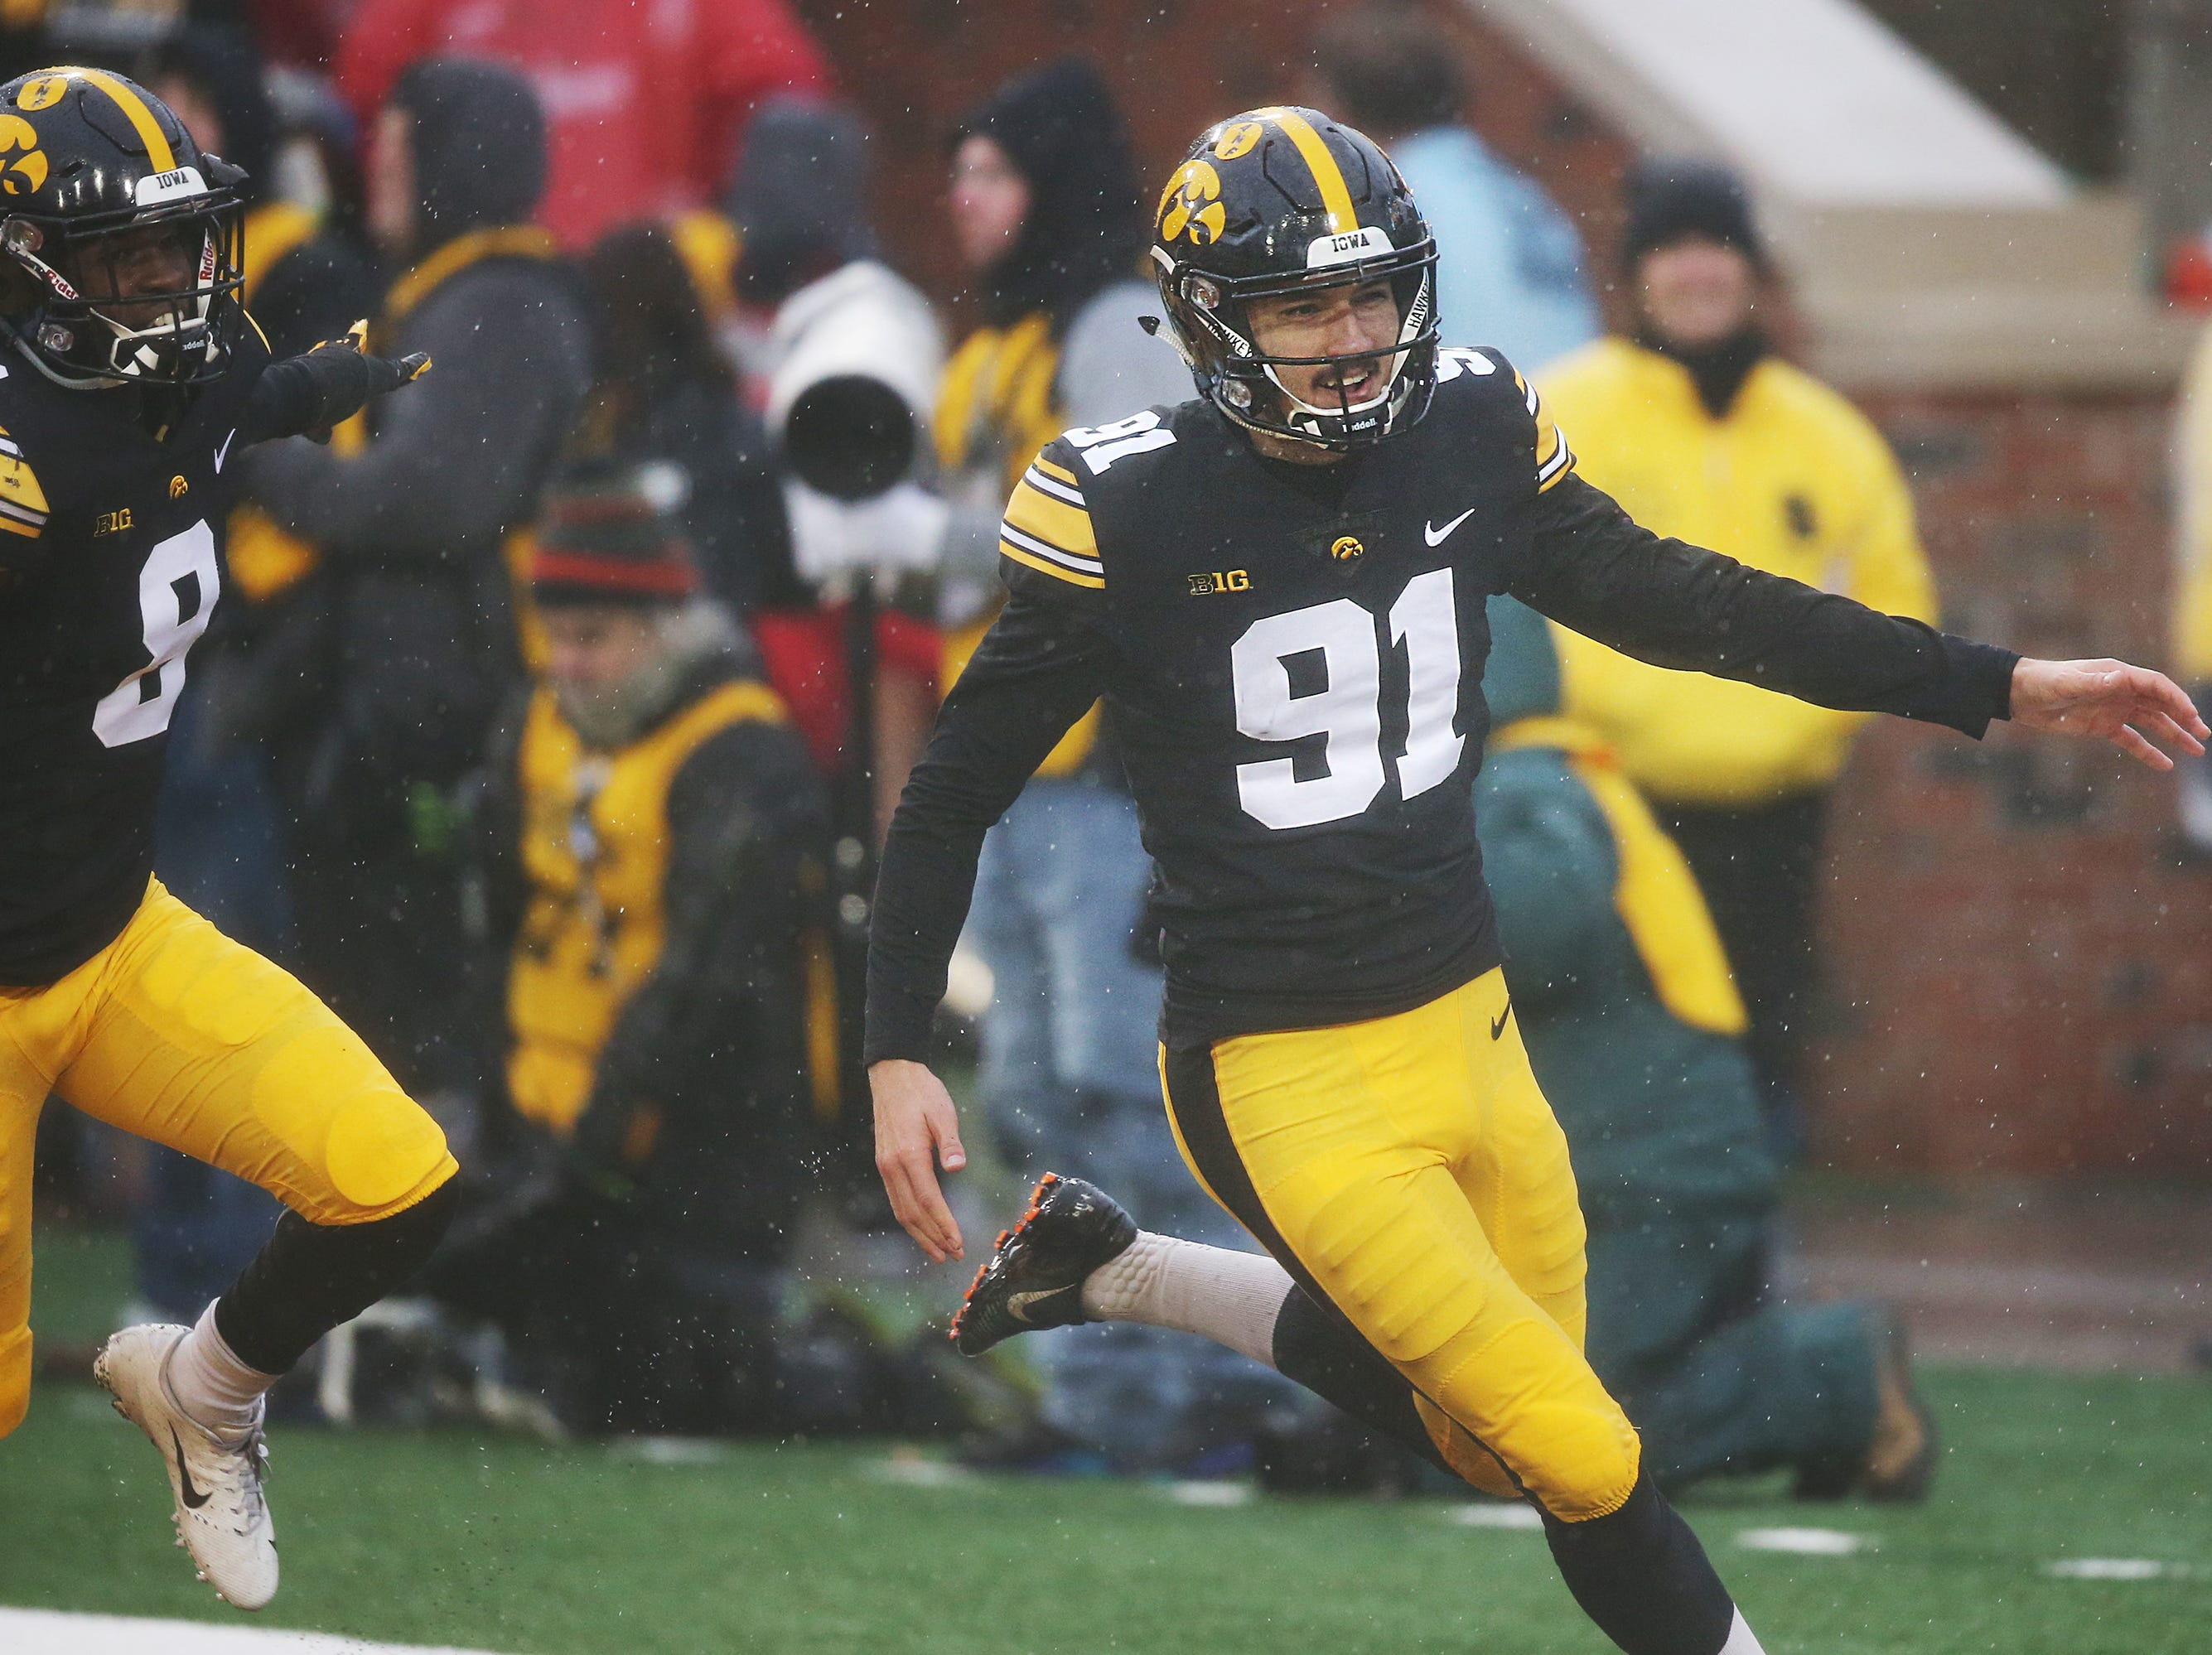 Iowa's kicker Miguel Recinos celebrates after making the game winning kick during the senior day match-up between the Iowa Hawkeyes and the Nebraska Cornhuskers on Friday, Nov. 23, 2018, at Kinnick Stadium, in Iowa City.